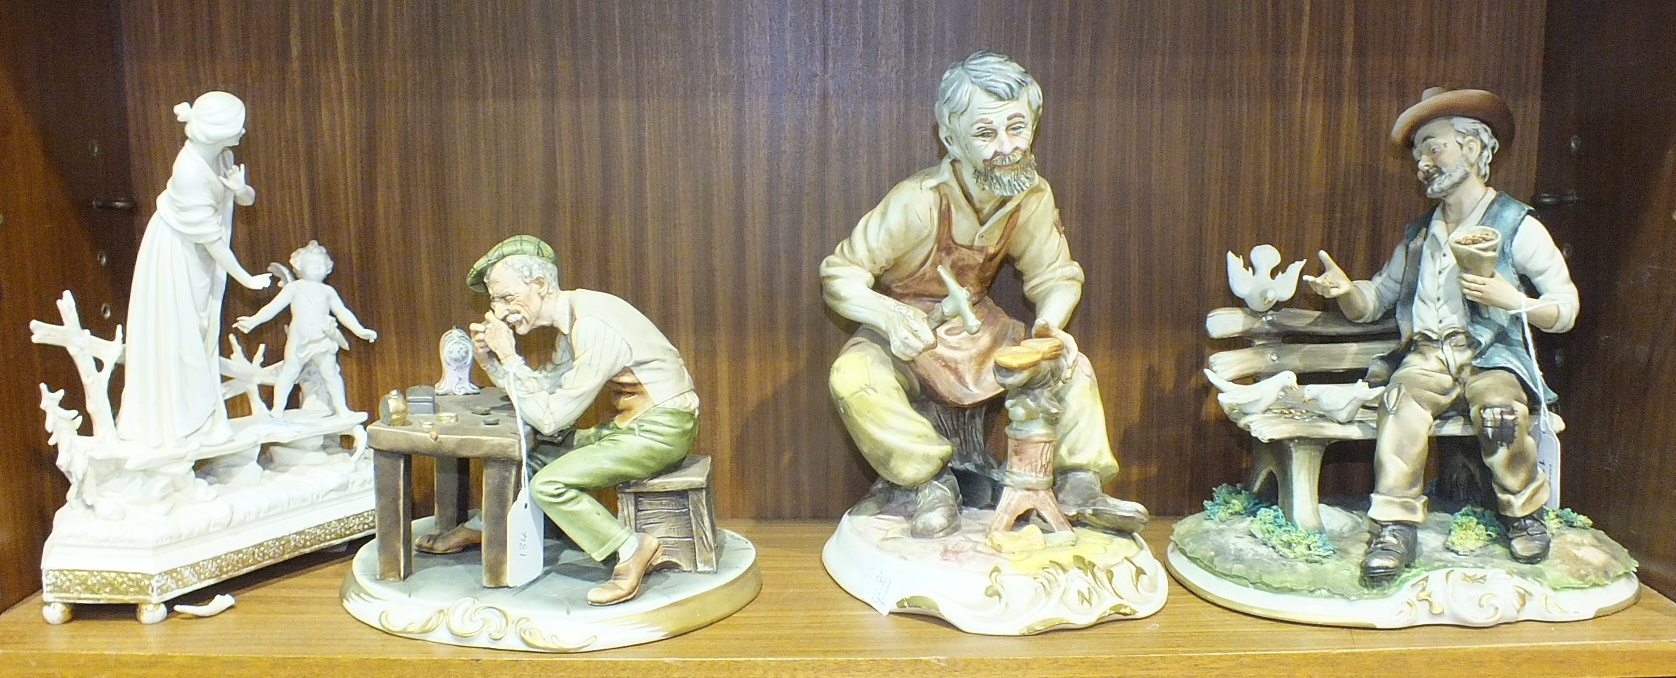 Lot 134 - A Capo-di-monte-style figure depicting a clock maker, 20cm high, two other similar figures and a